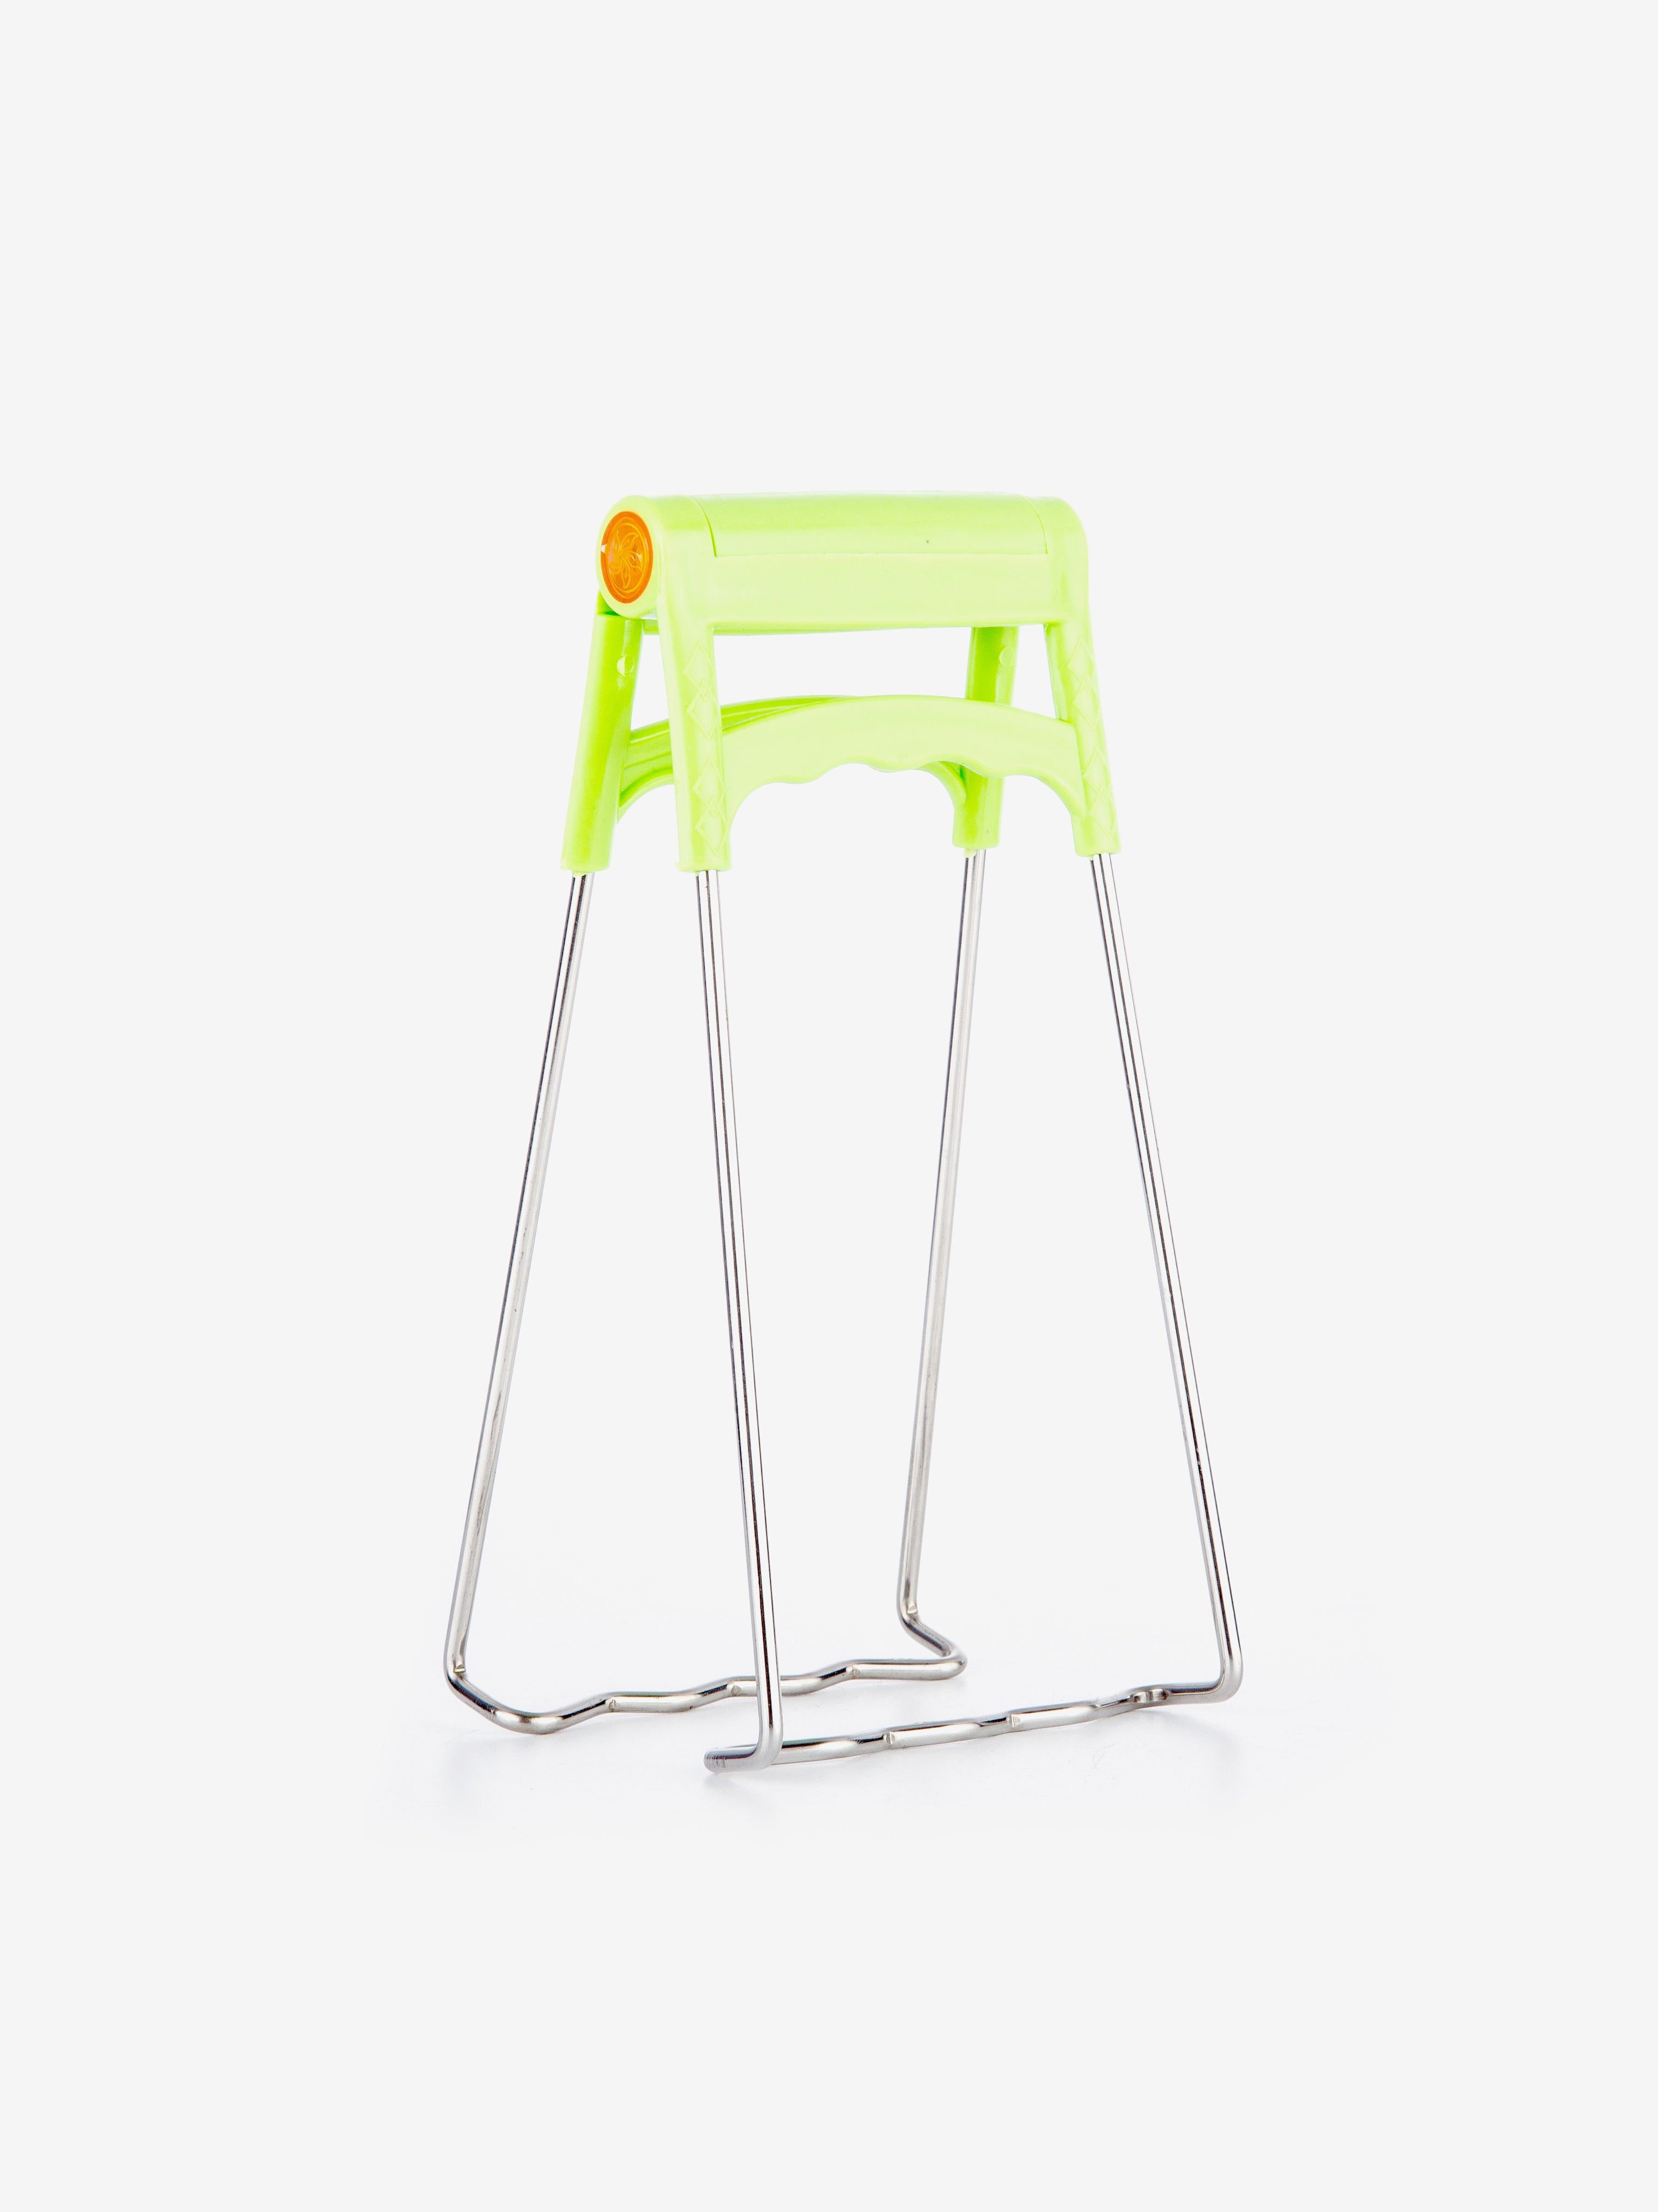 Plate Clamp in Neon Green